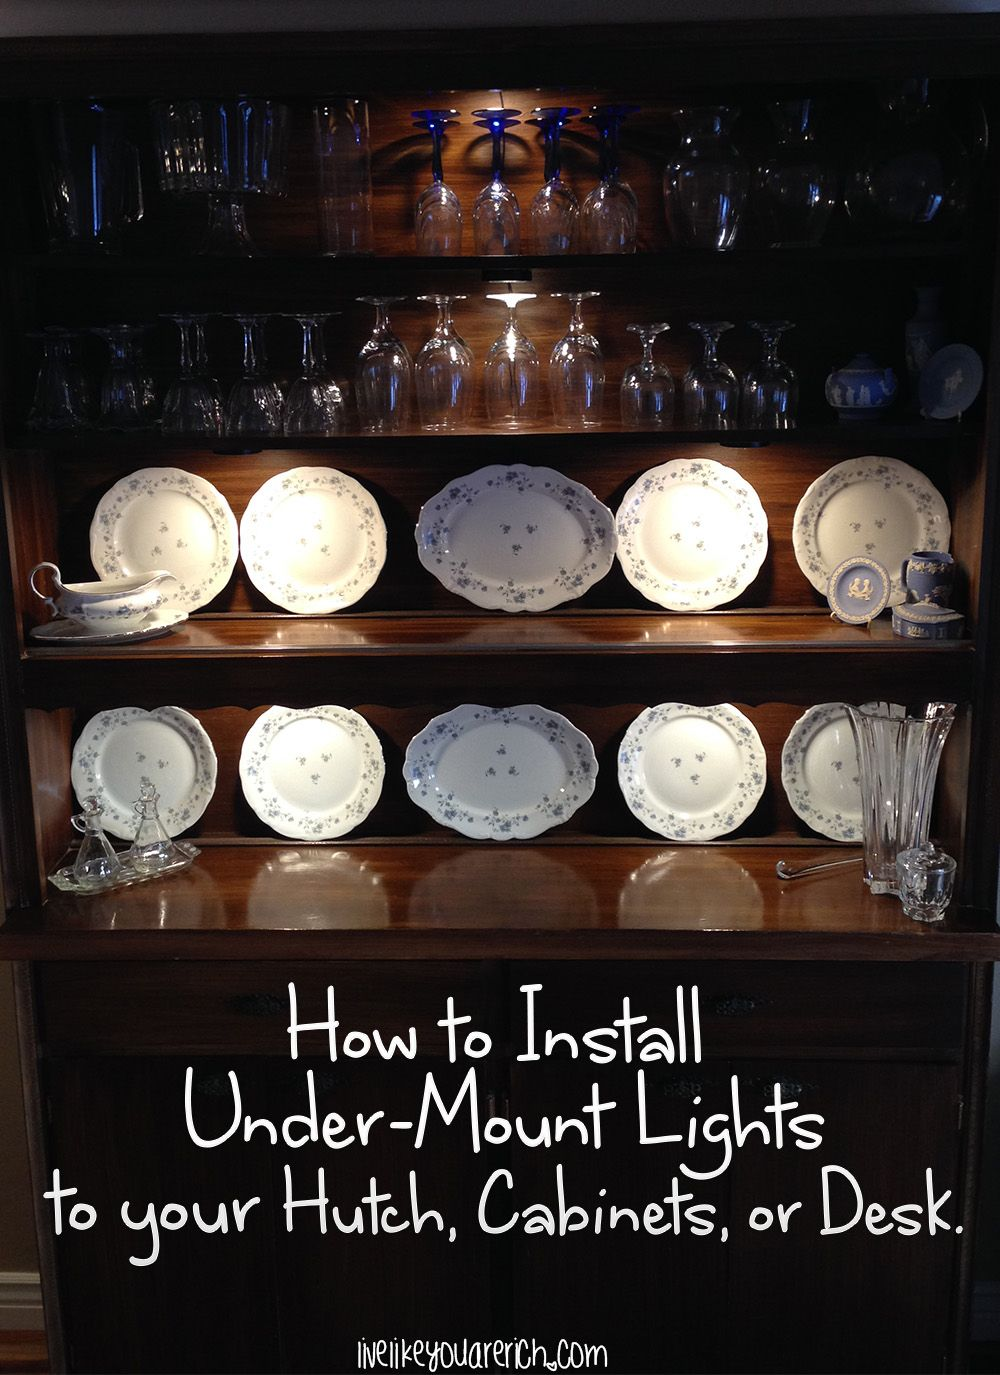 How to Install Under-Mount Lights on Your Hutch, Cabinets, Desk, etc ...